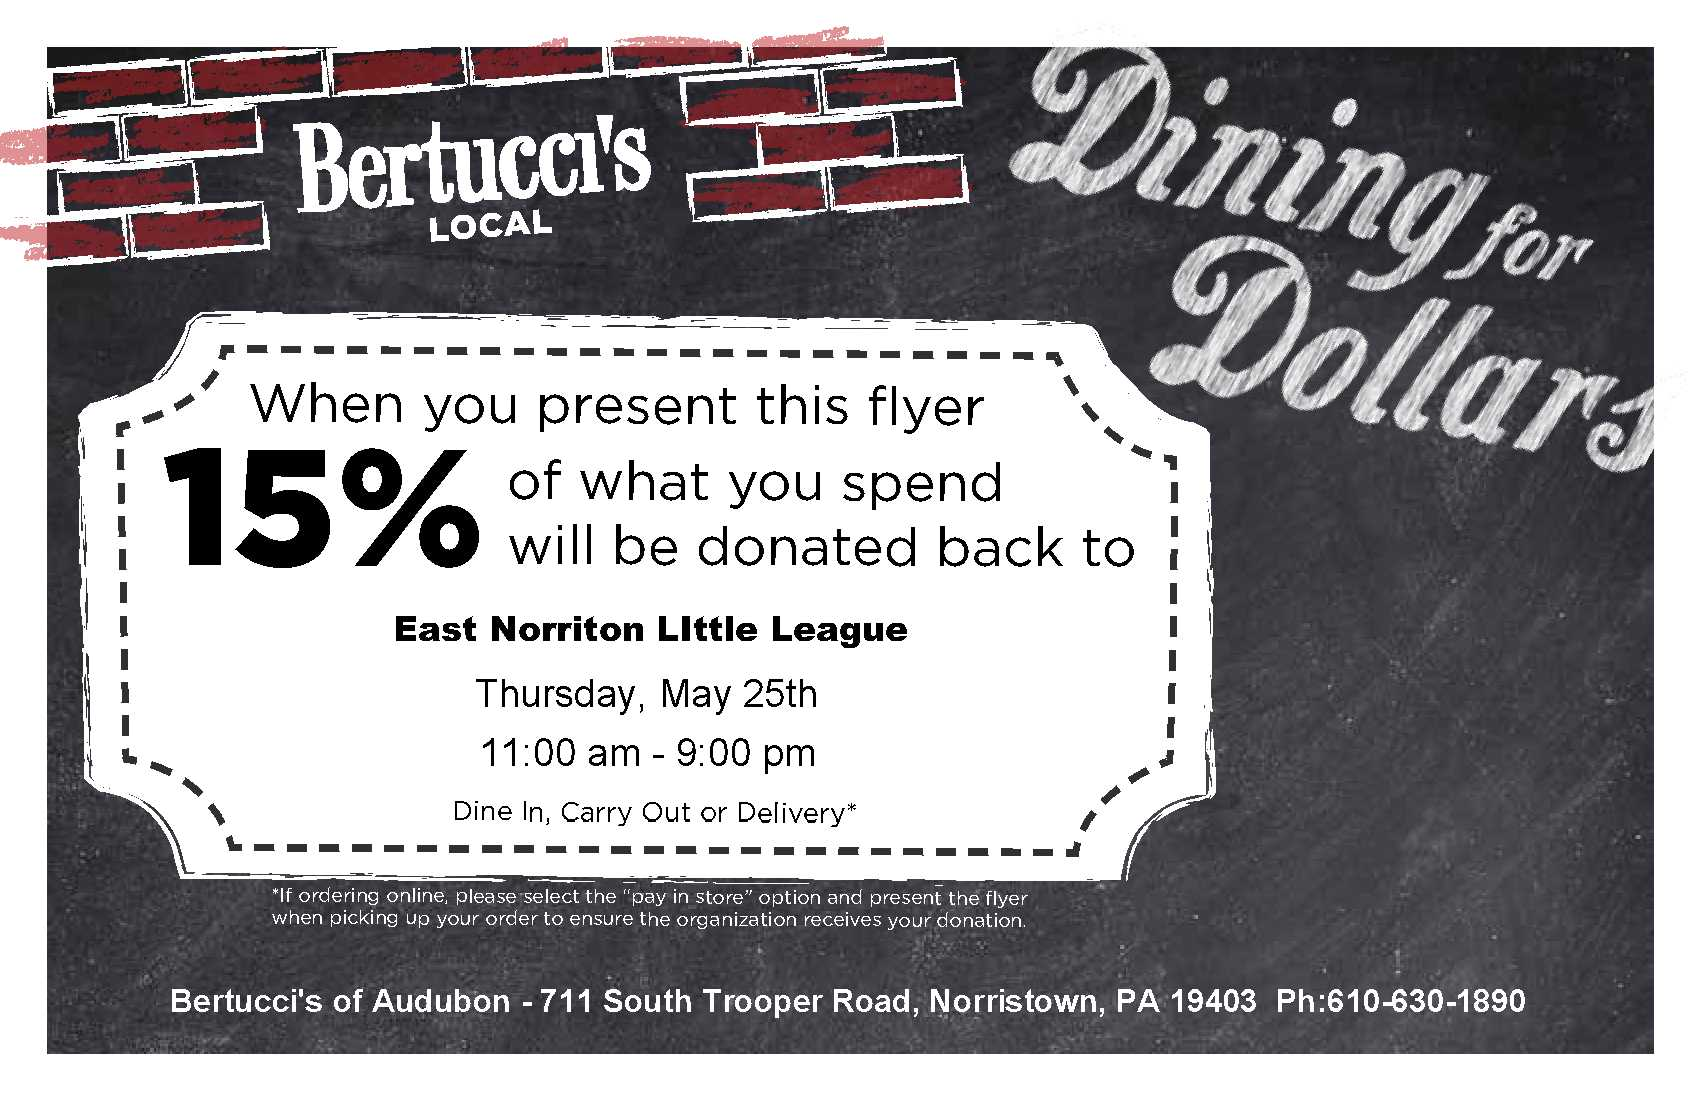 2017 Bertucci's Dining for Dollars - May